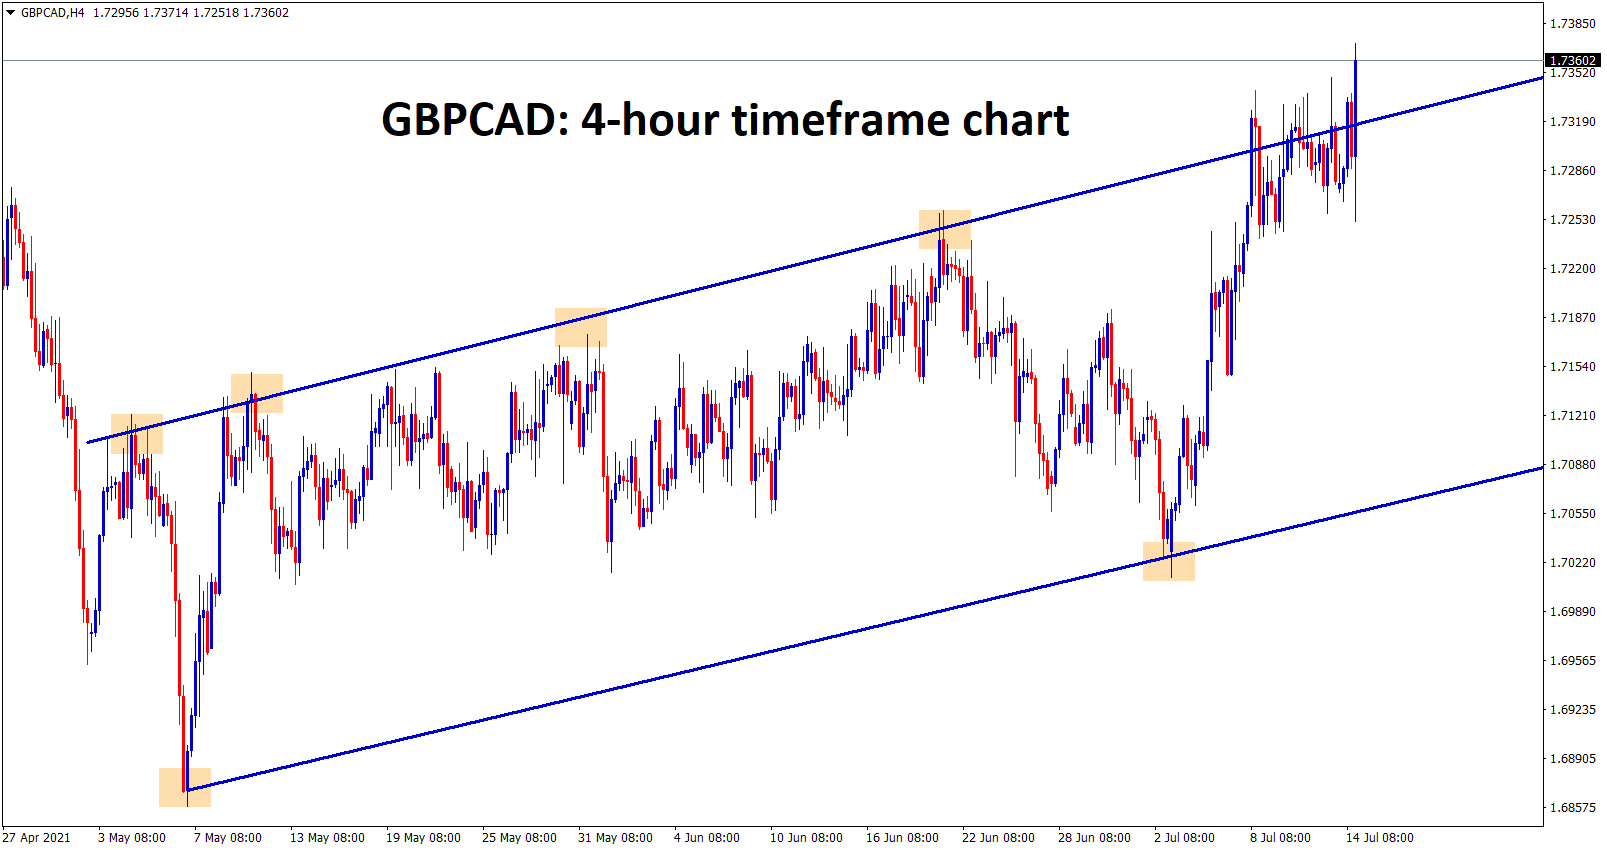 GBPCAD is consolidating at the higher highs zone wait for the confirmation of breakout or reversal.